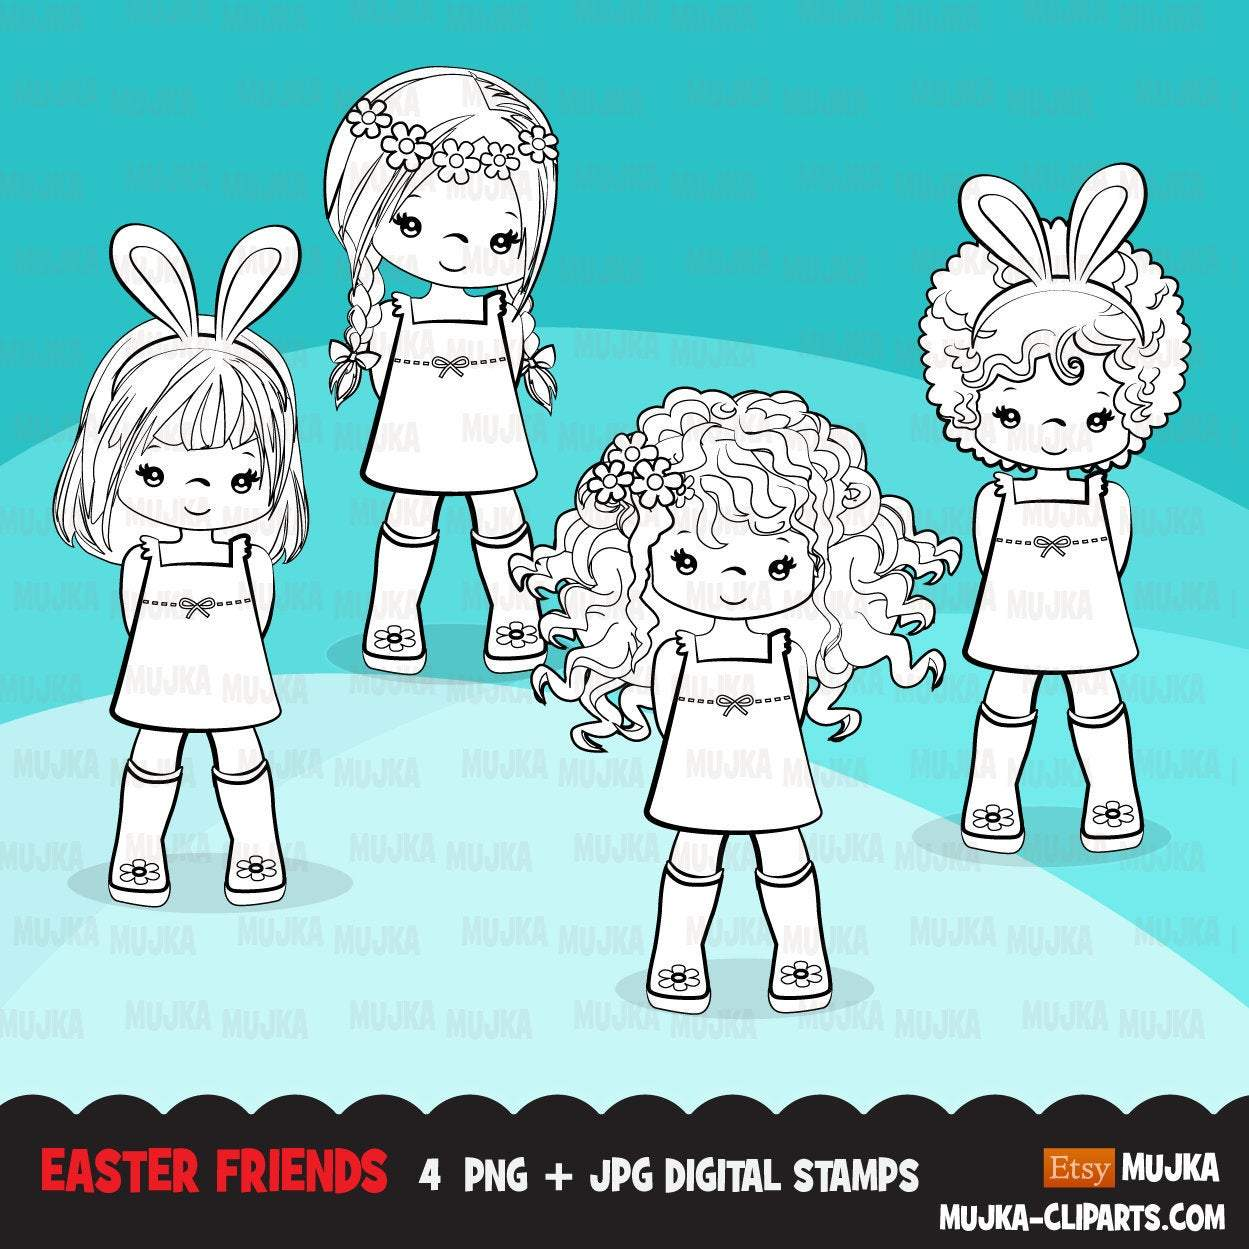 Easter Digital stamps, black & white Easter girls graphics, egg hunt, bunny ears, best friends, coloring book art outline clipart